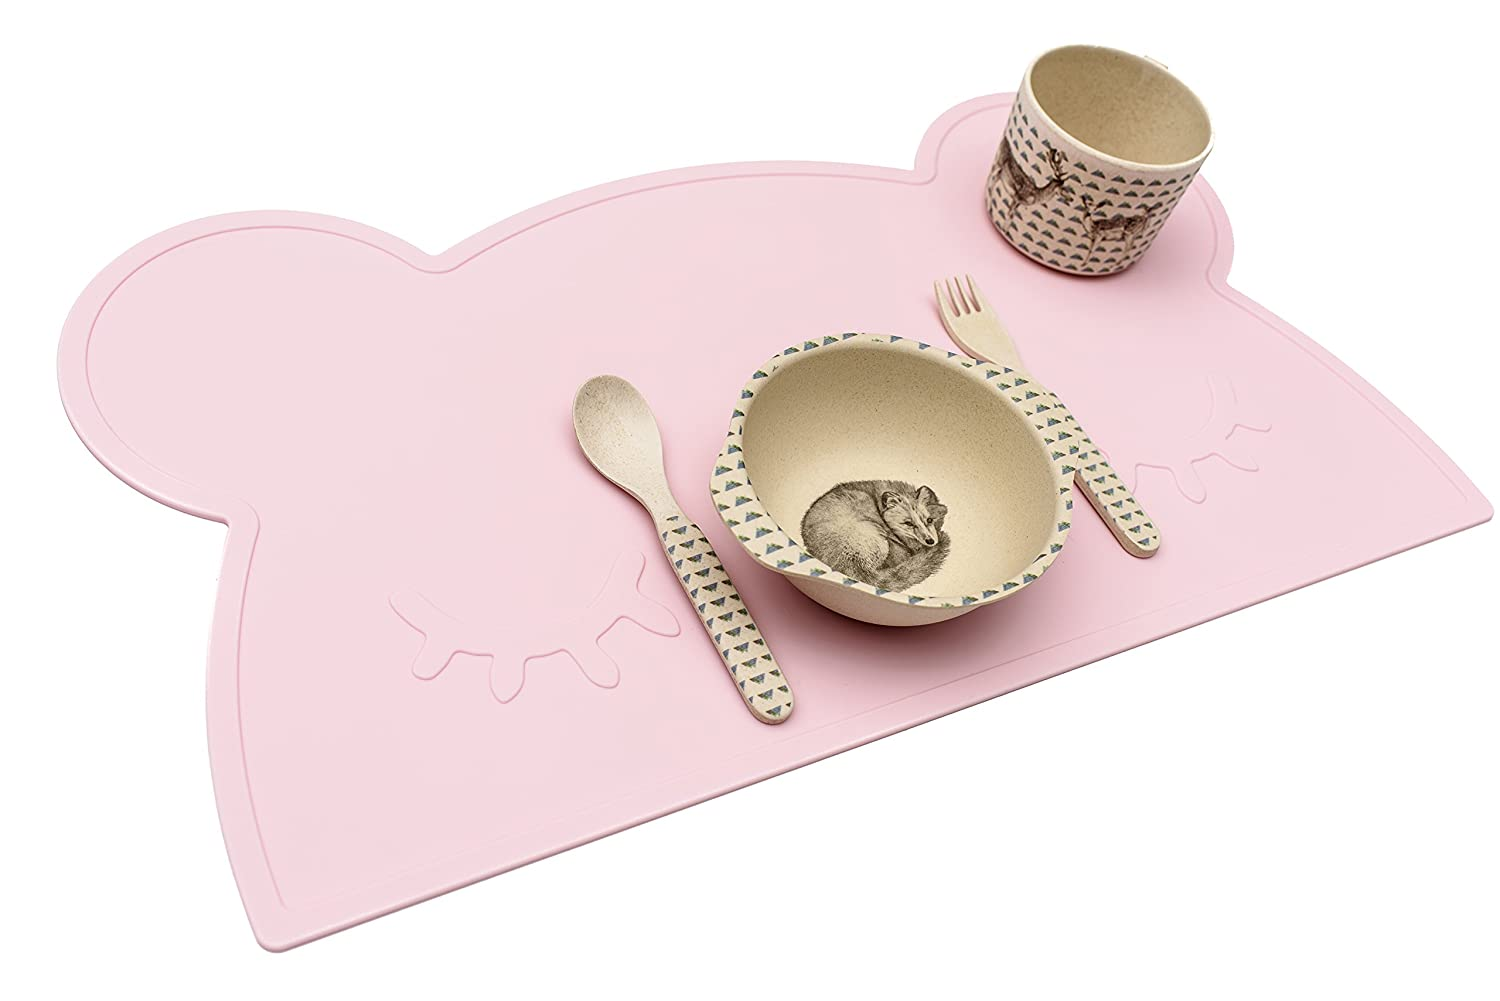 BPA free and Dishwasher safe Silicone Placemat for Babies and Children in Powder Pink Bear design